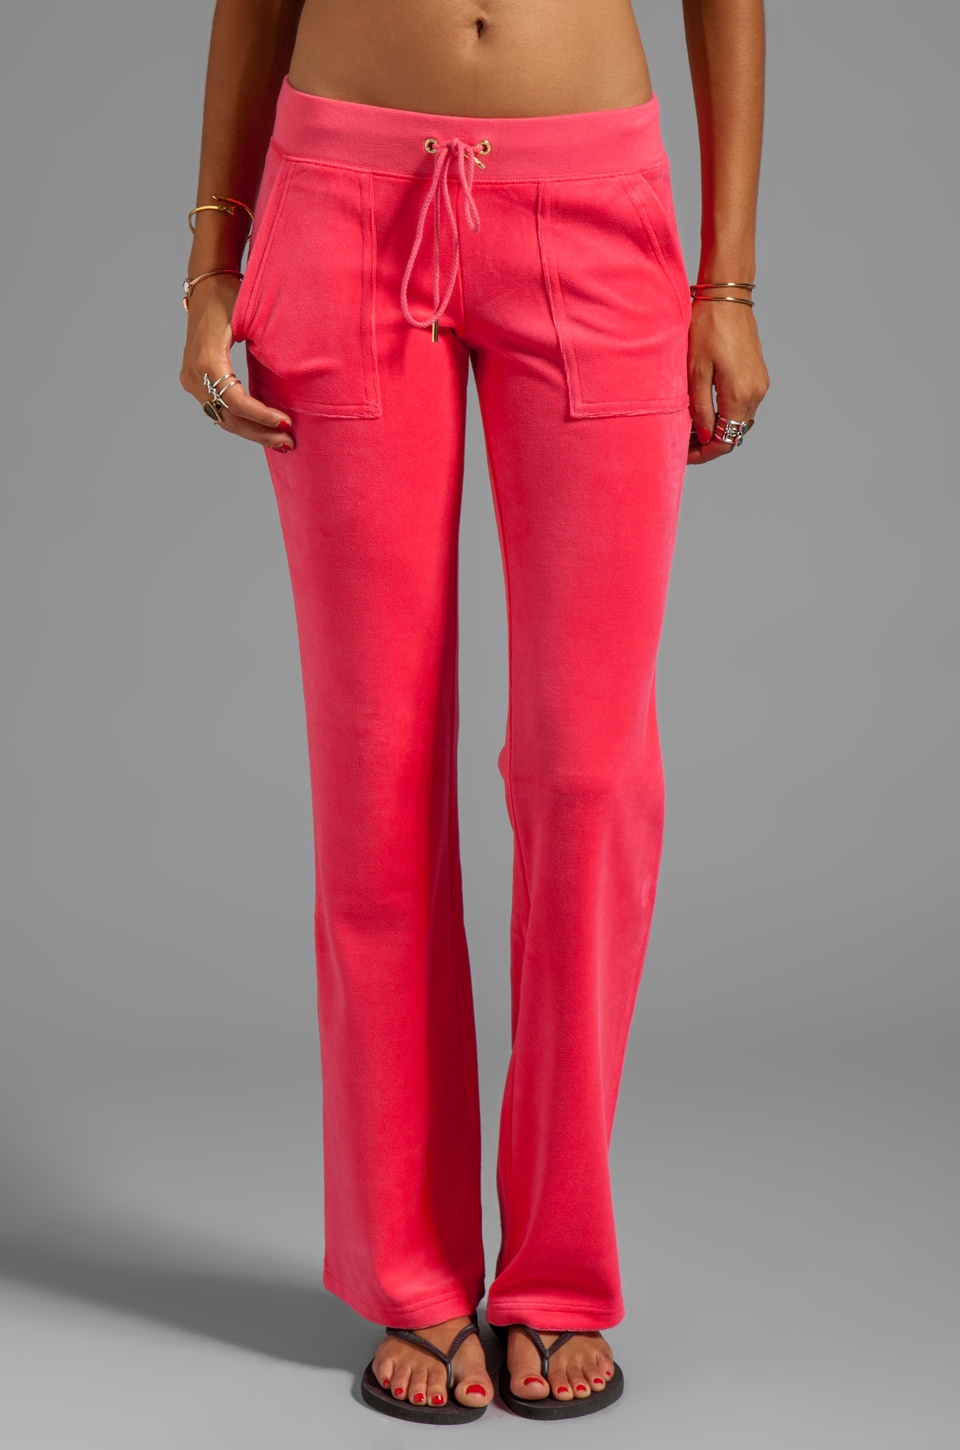 Juicy Couture Velour Bling Bootcut Sweatpant in Frolic